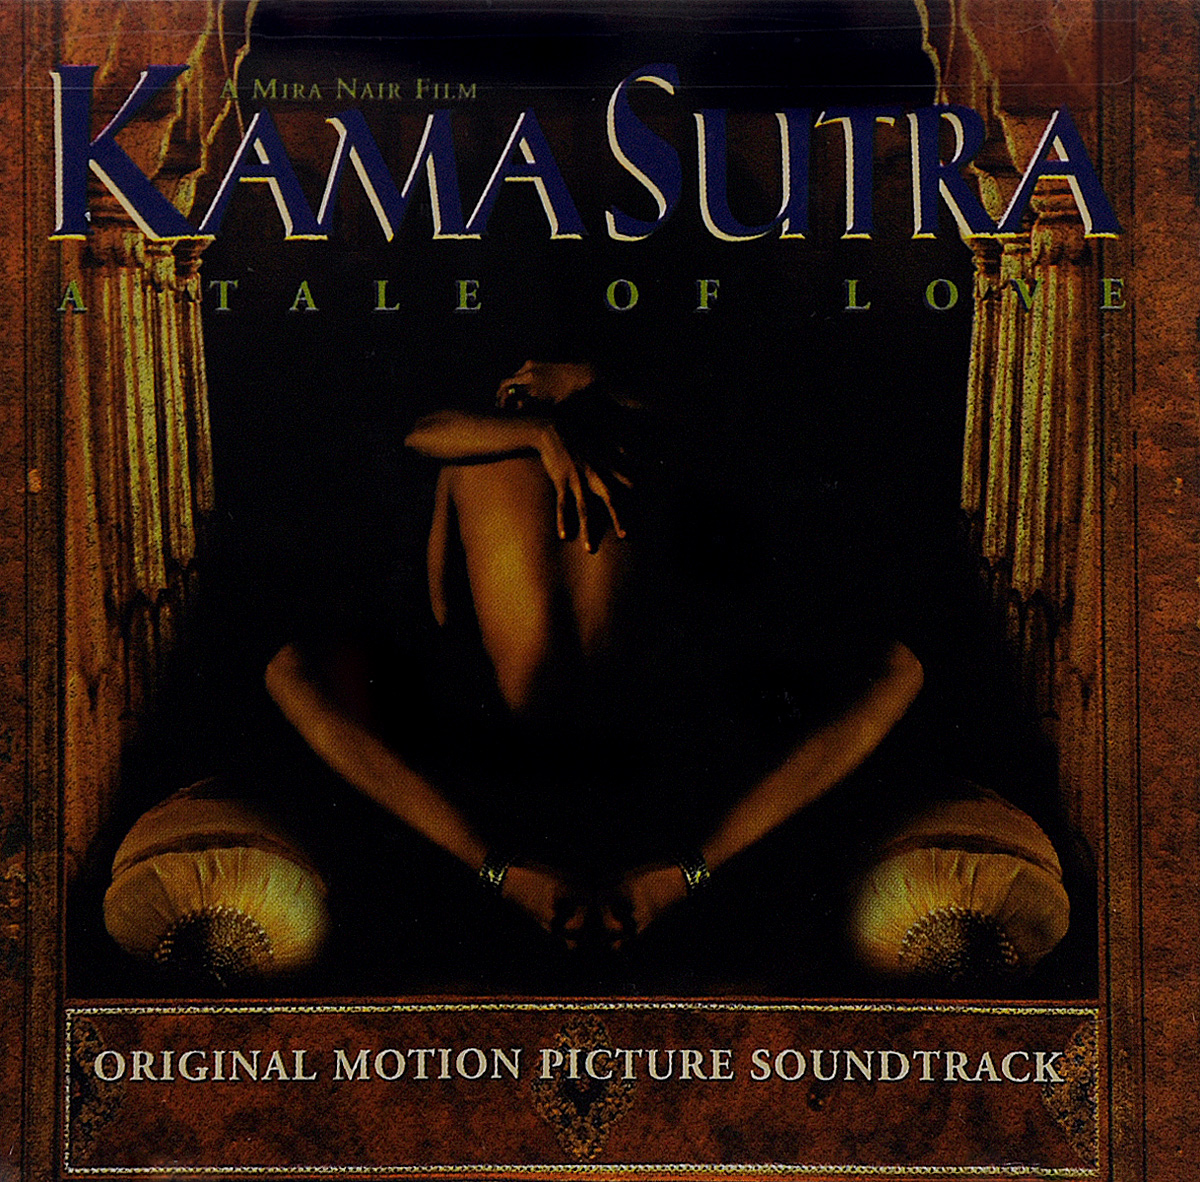 Kama Sutra. Original Motion Picture Soundtrack whiplash original motion picture soundtrack